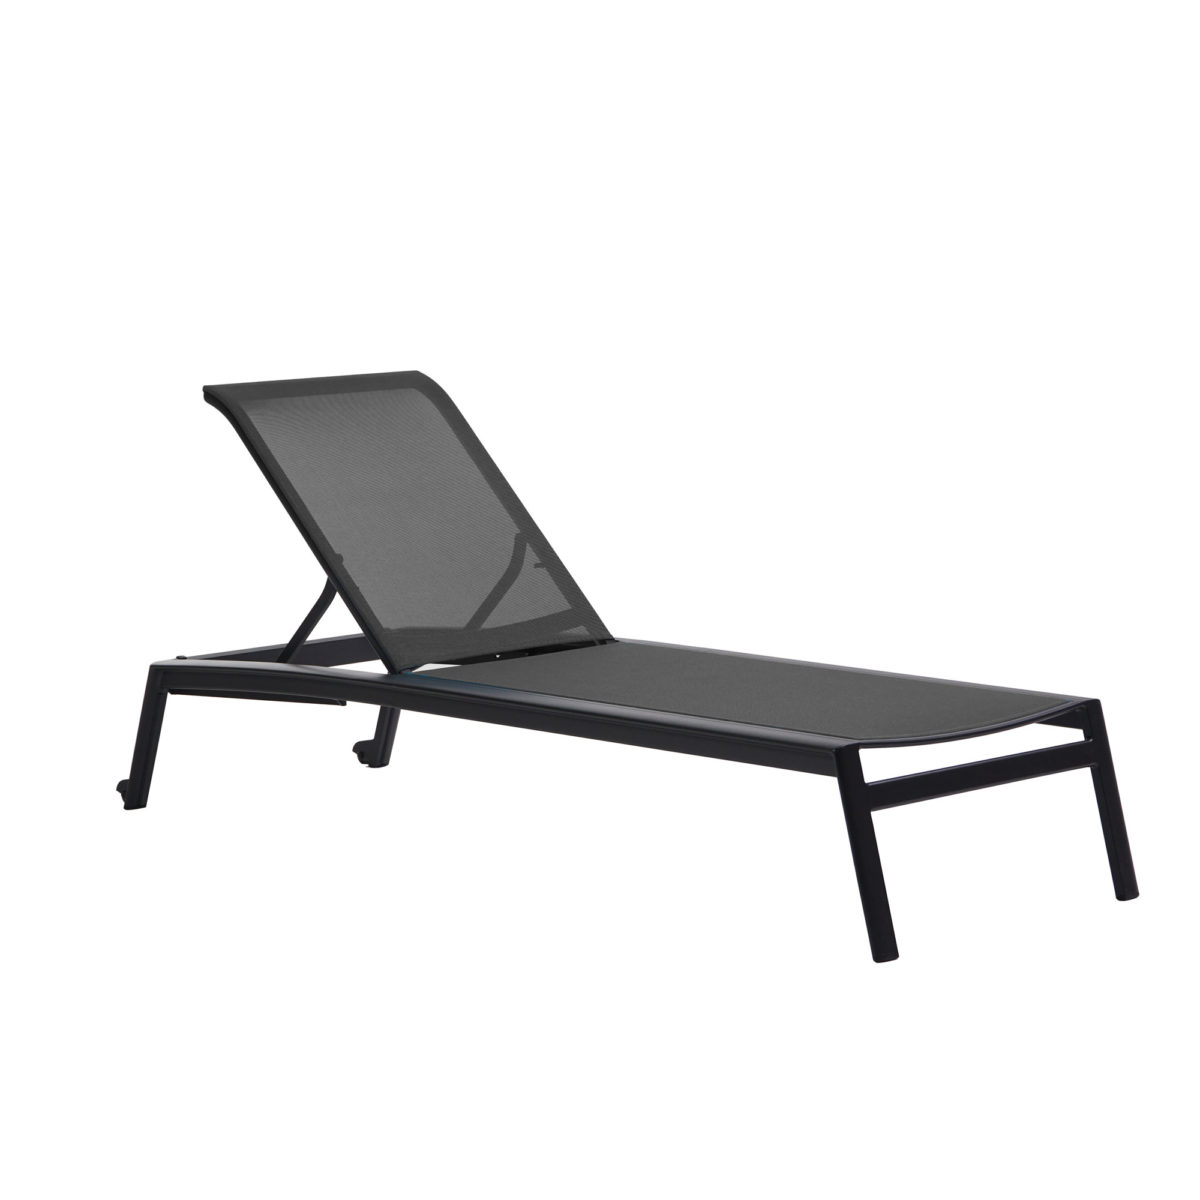 Lyon adjustable lounger in black.